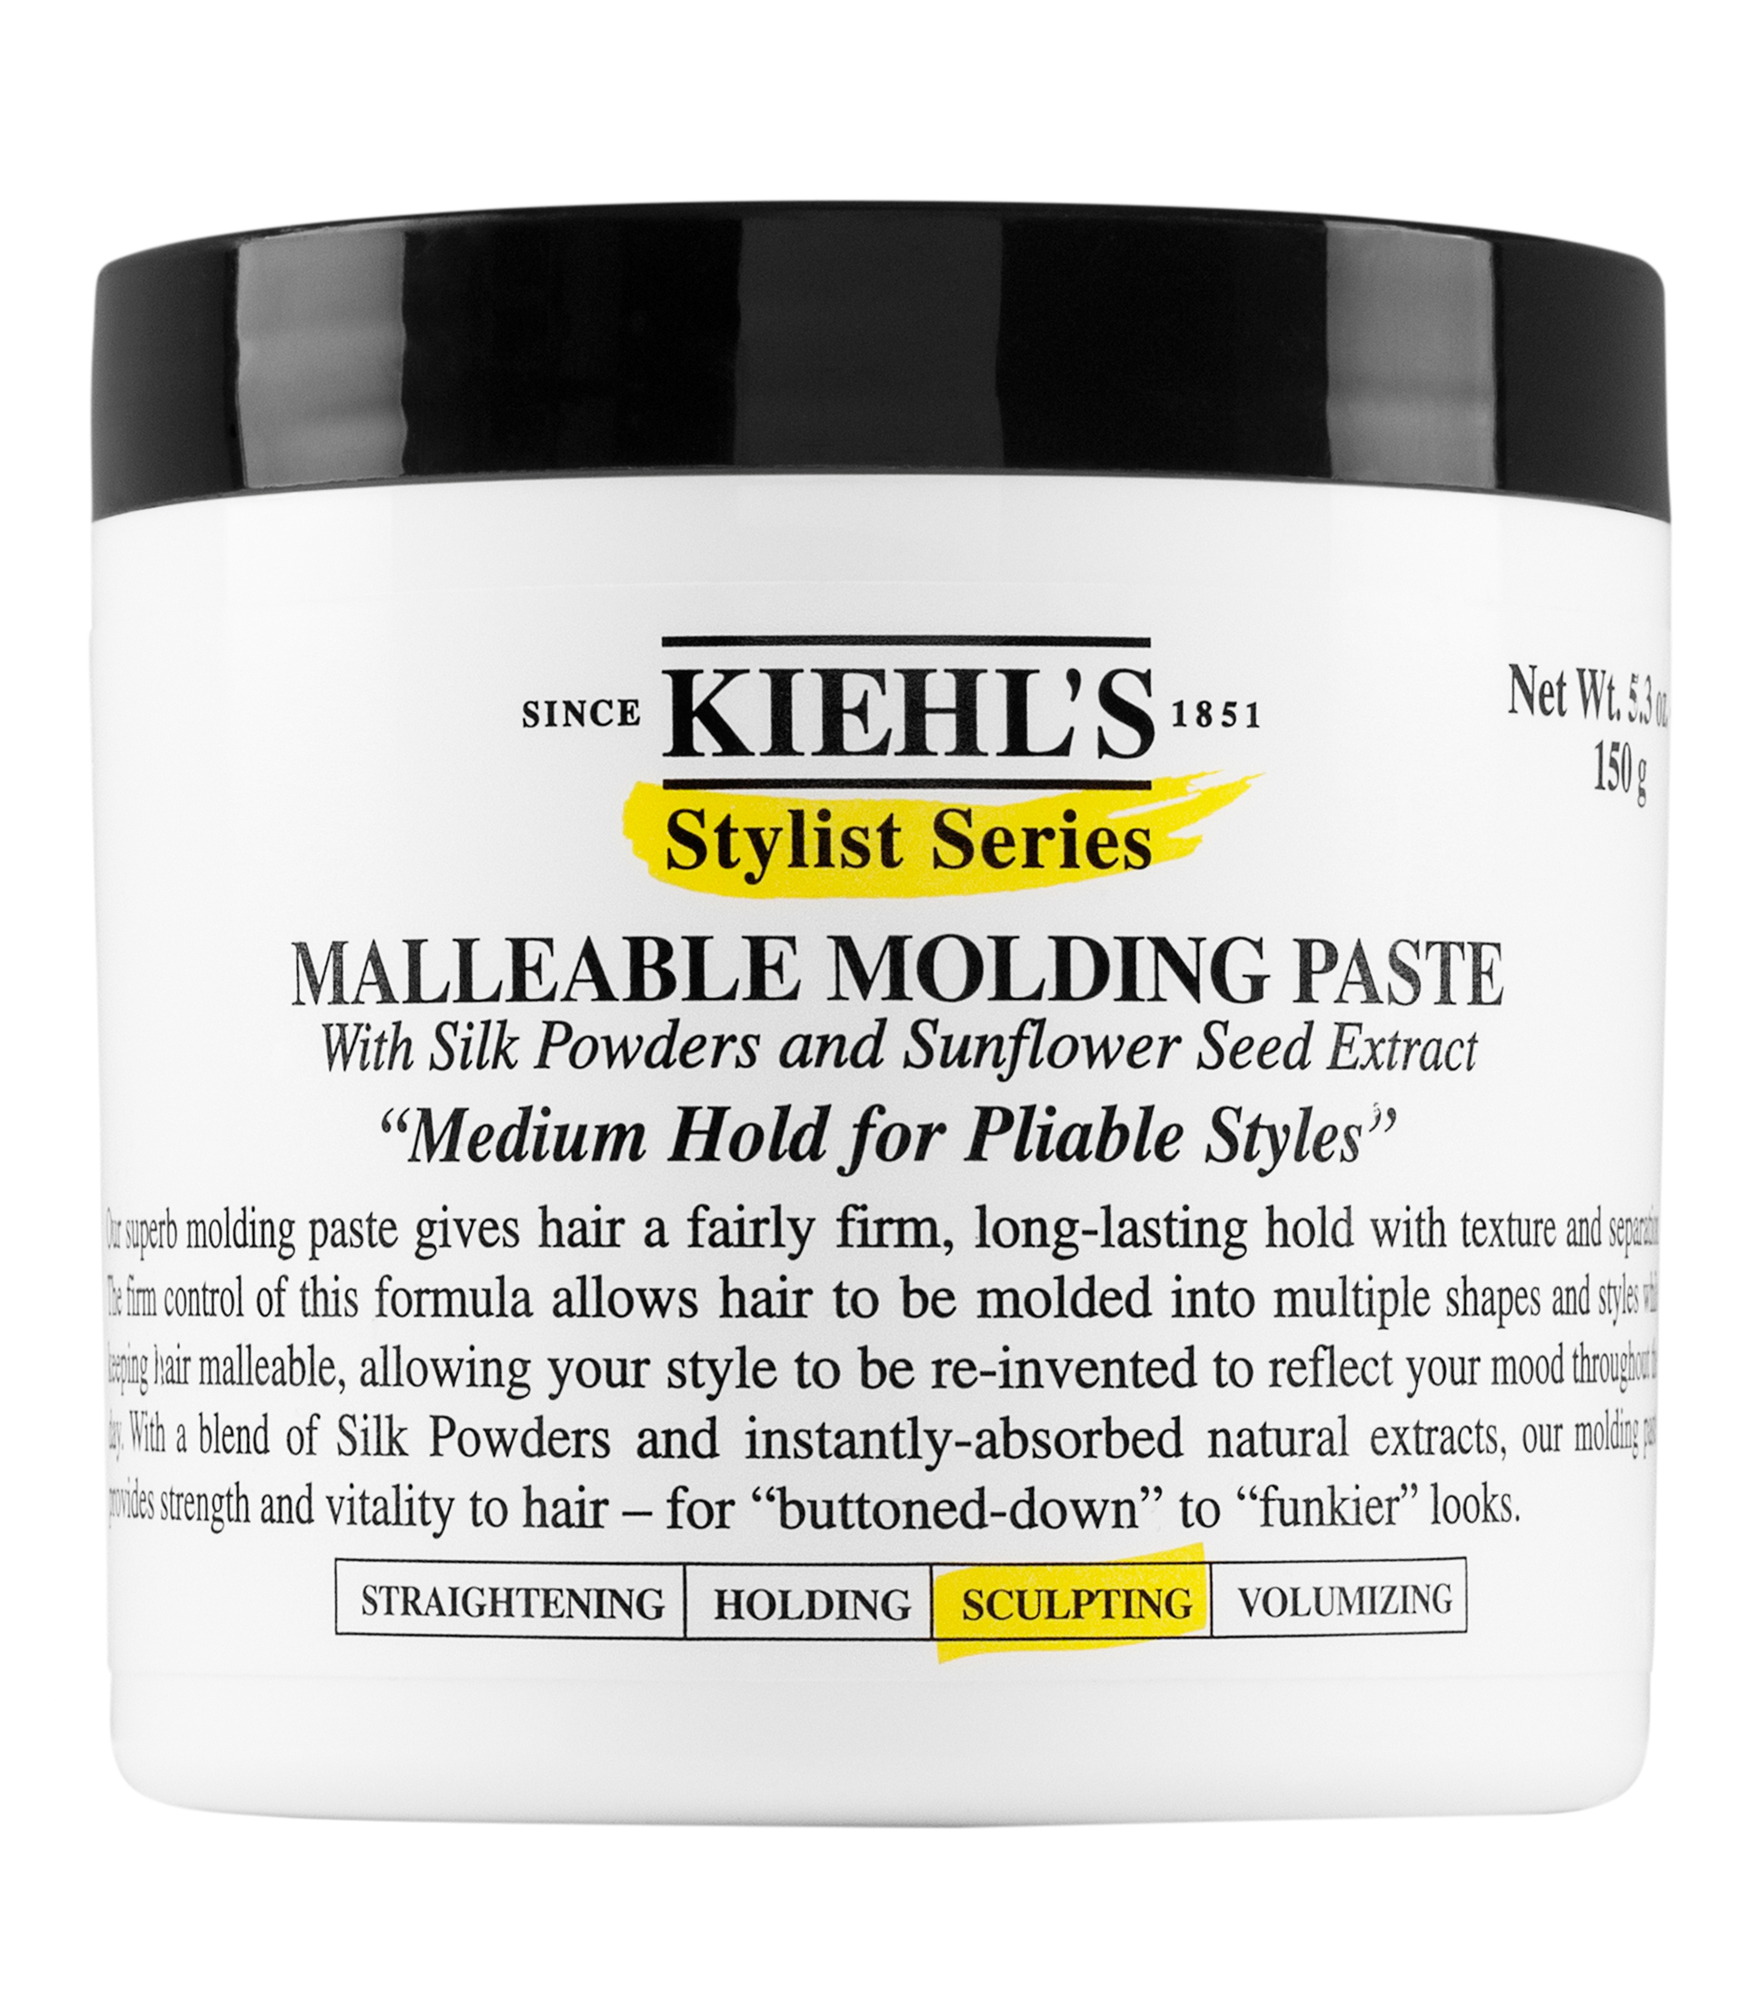 Hair Styling Paste Malleable Molding Paste  Hair Styling Paste  Kiehl's